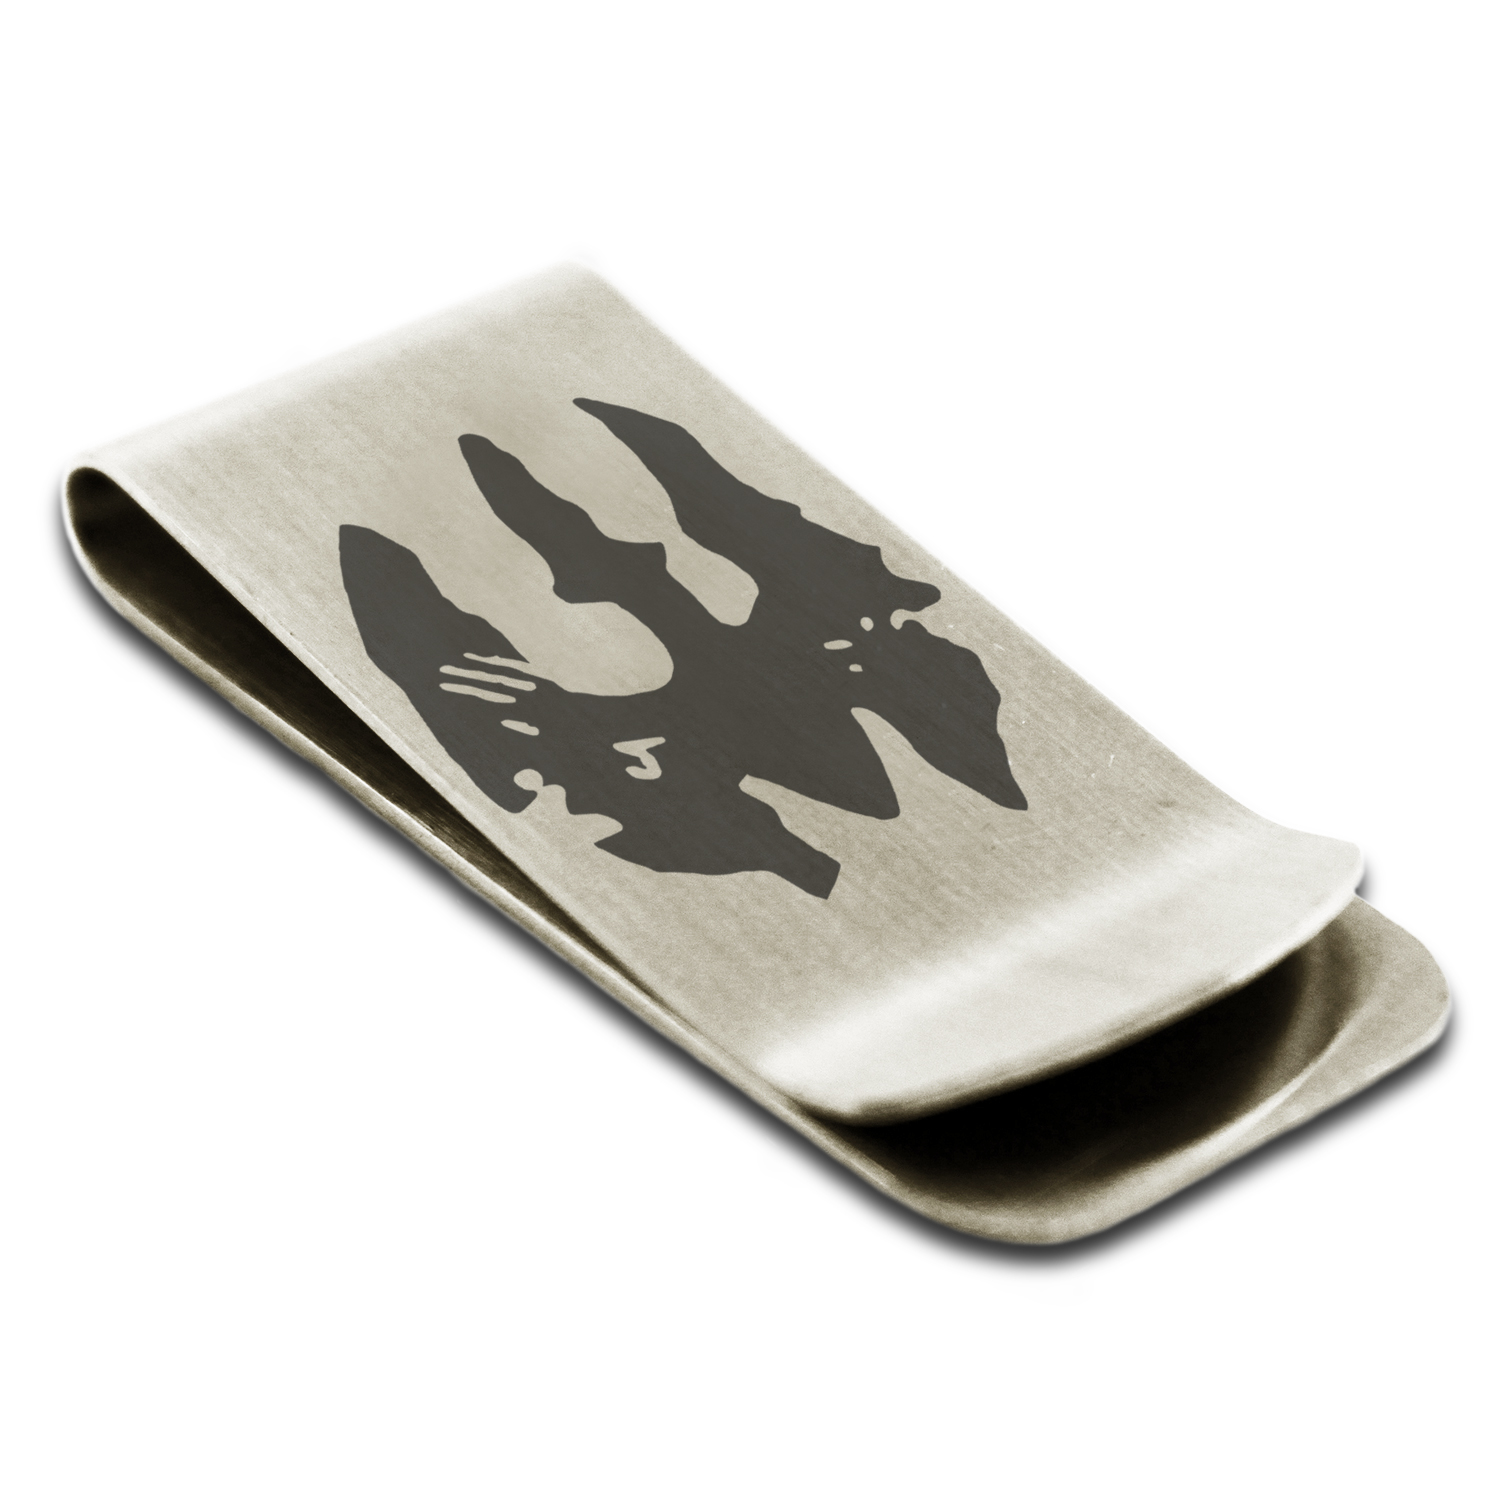 Stainless steel star wars mandalorian death watch symbol engraved stainless steel star wars mandalorian death watch symbol engraved money clip credit card holder walmart biocorpaavc Image collections